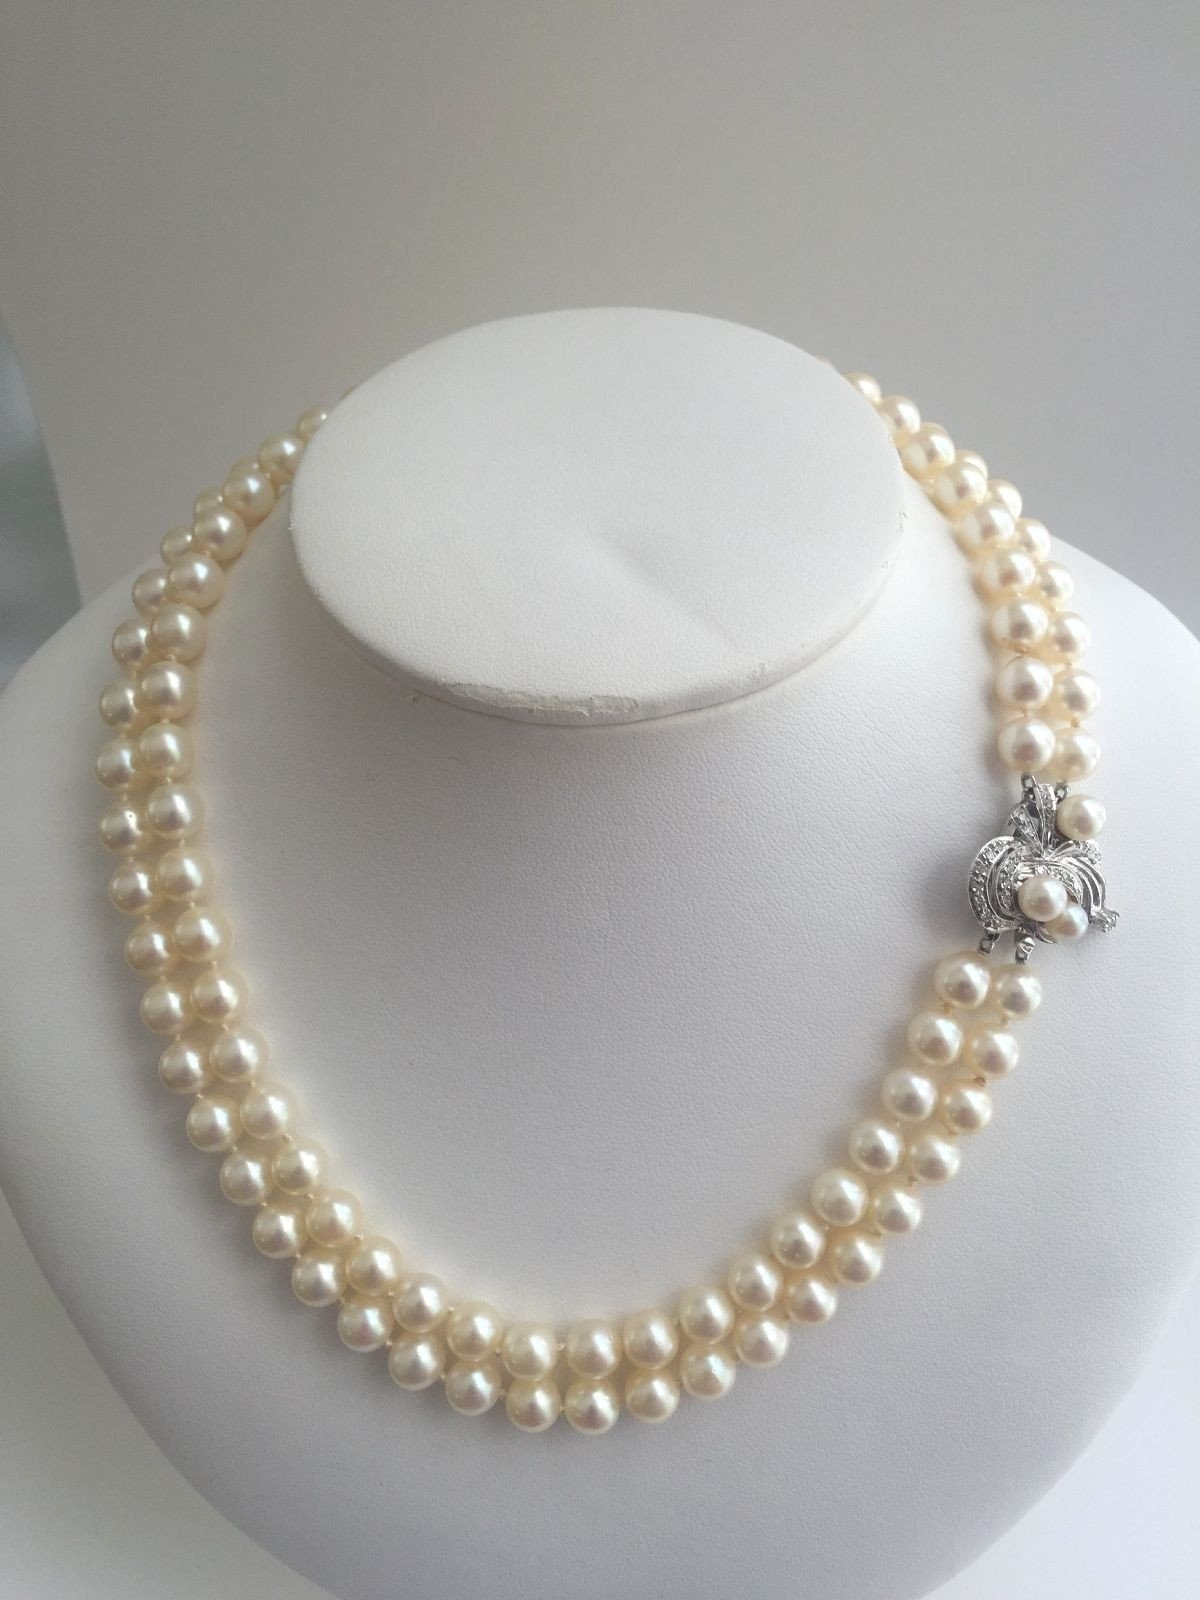 4b8093a1f1894 Vintage Double Strand Akoya Pearl Necklace with Diamond 14k White ...